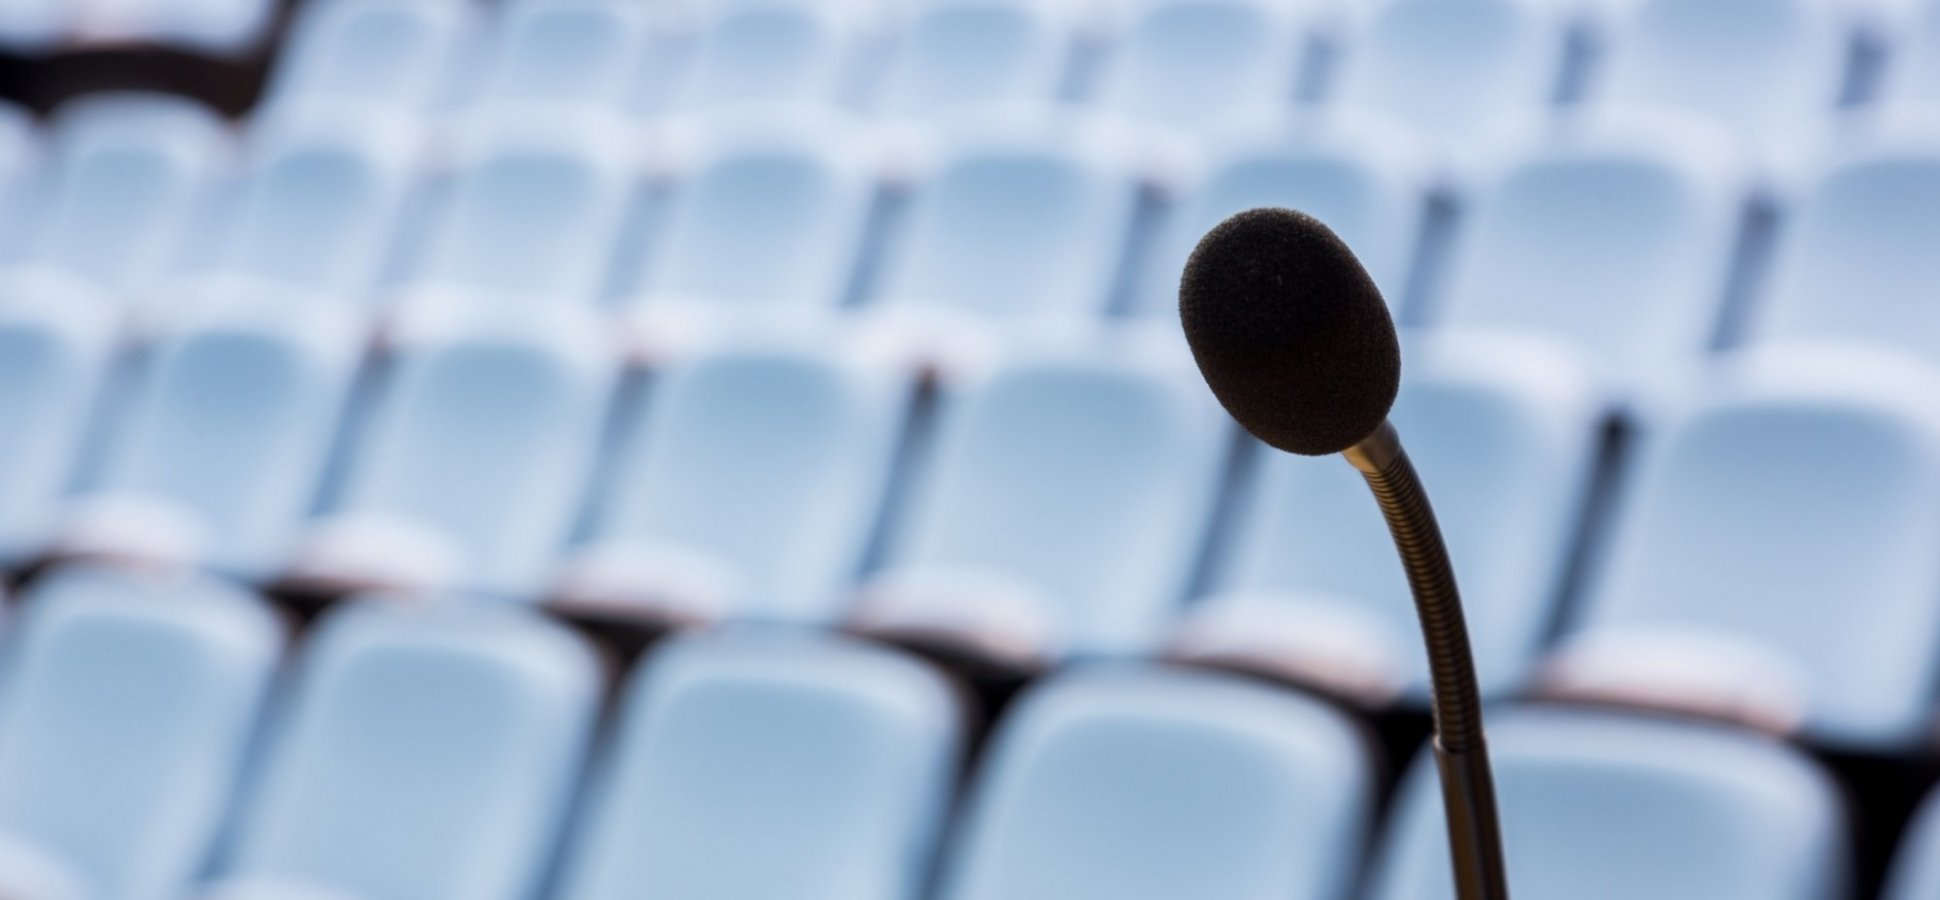 End Your Public Speaking Fears With These 3 Key Techniques